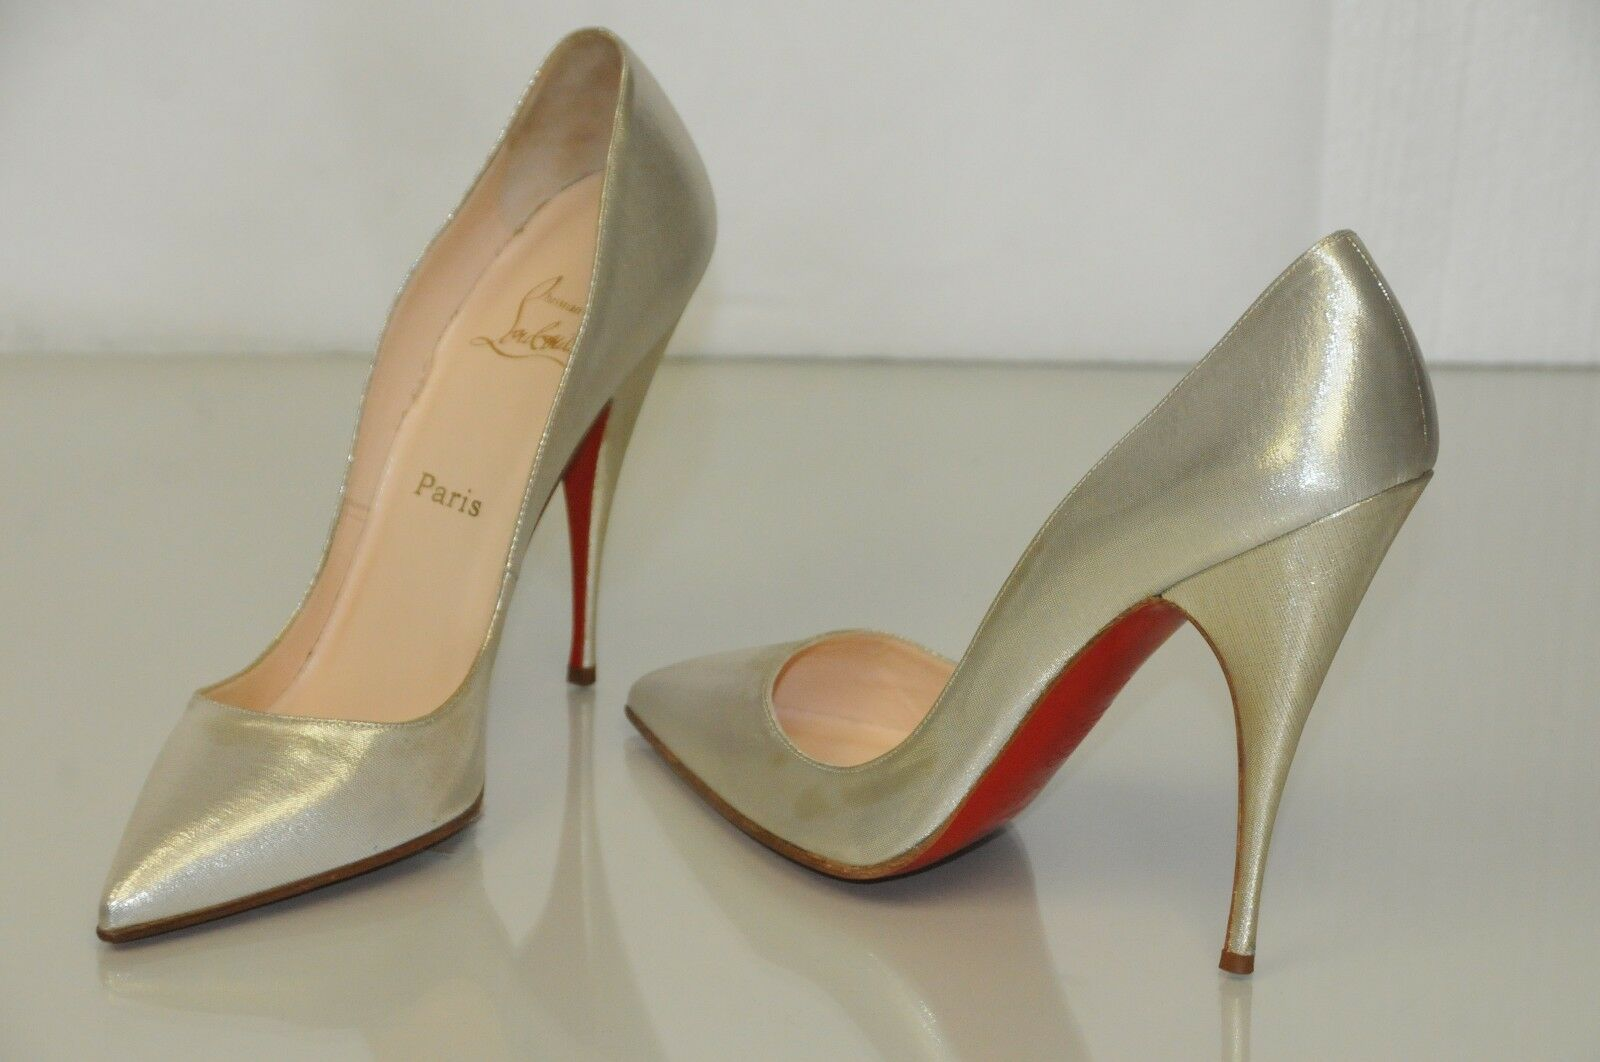 995 NEW Christian Louboutin Pumps Light gold Shimmer Lame  Heels shoes 39